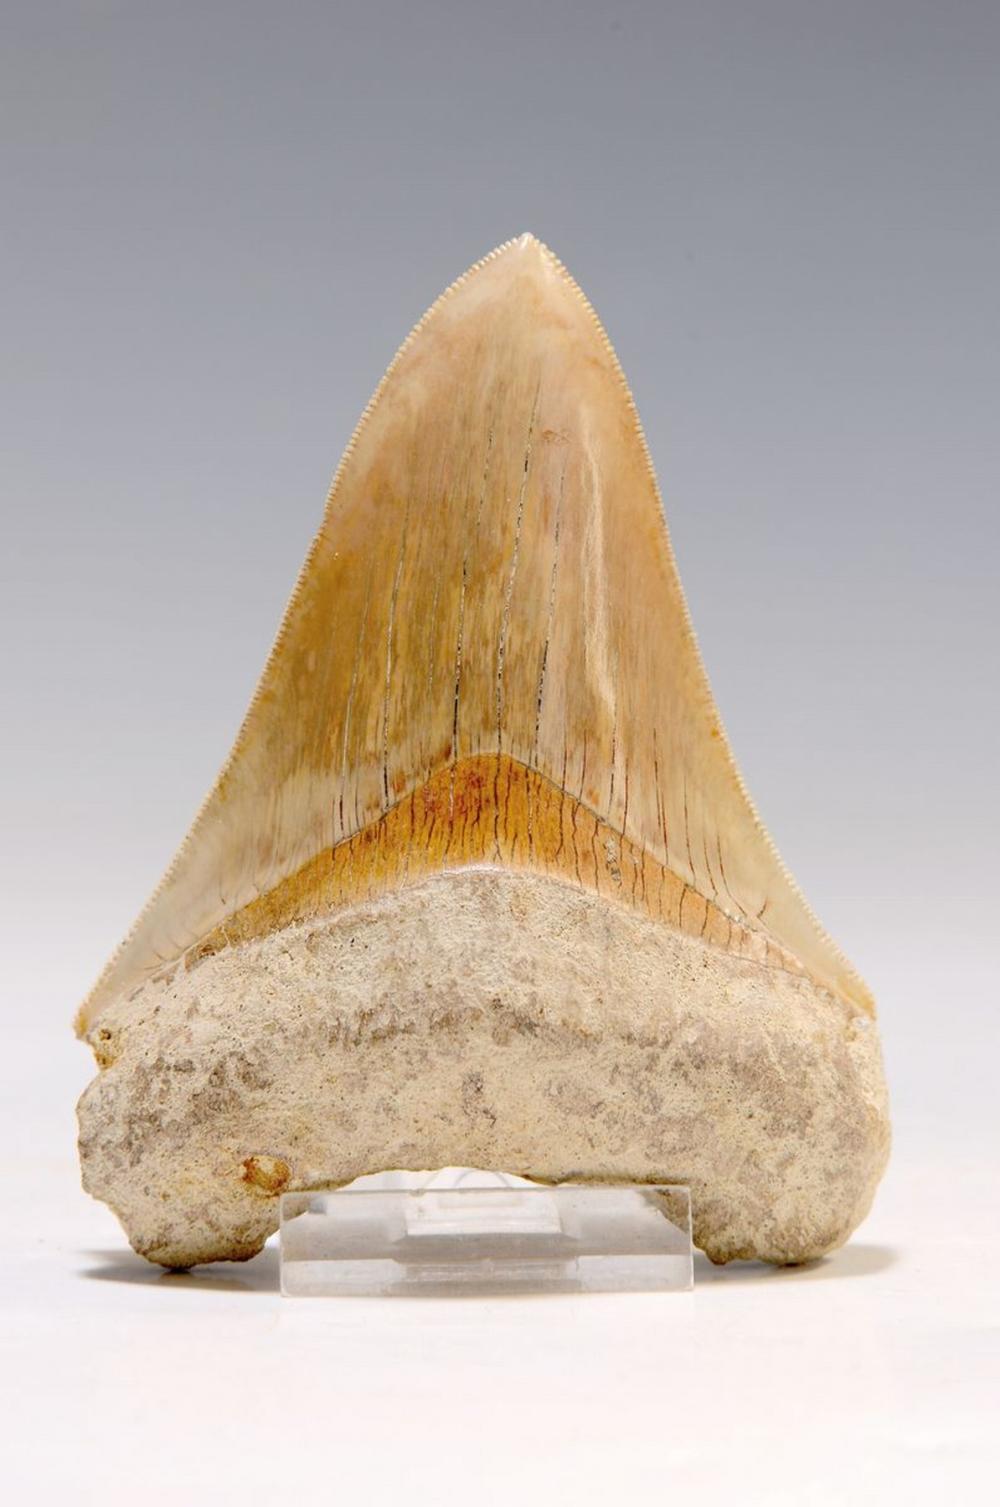 Megalodon big Shark Tooth, 'Carcharocles megalodon'